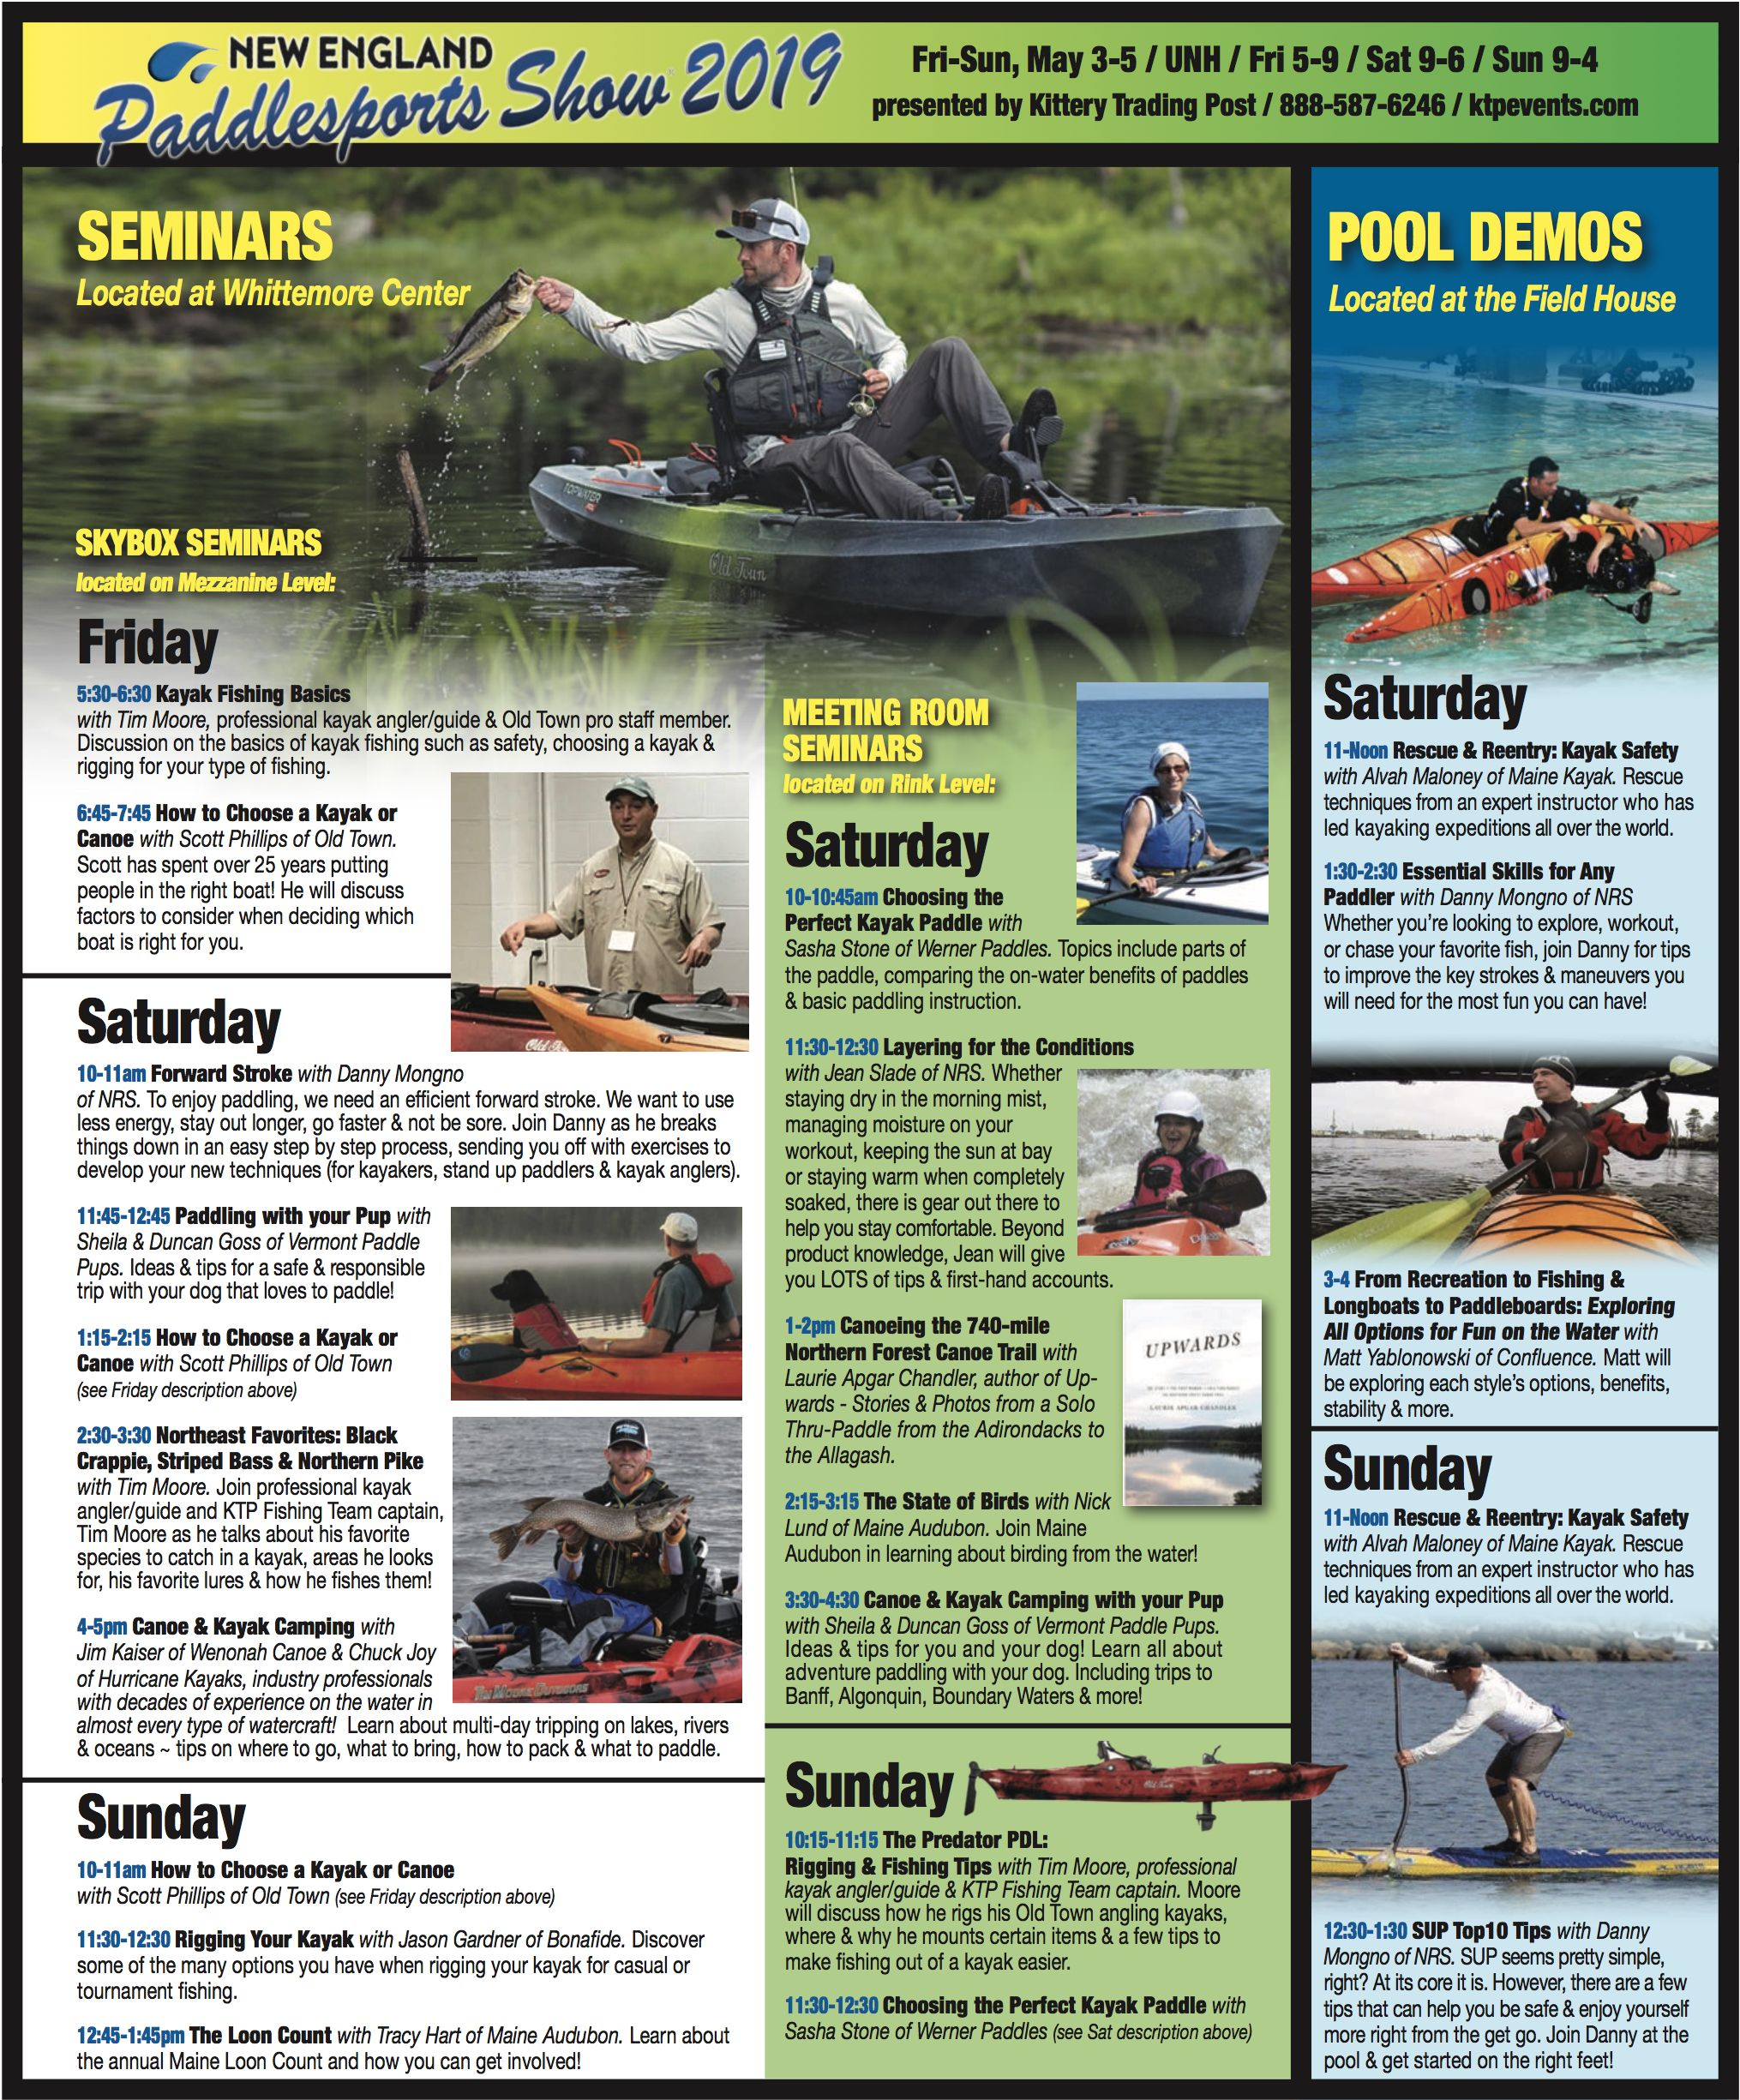 Join Us On May 3 5 At Unh For The New England Paddlesports Show